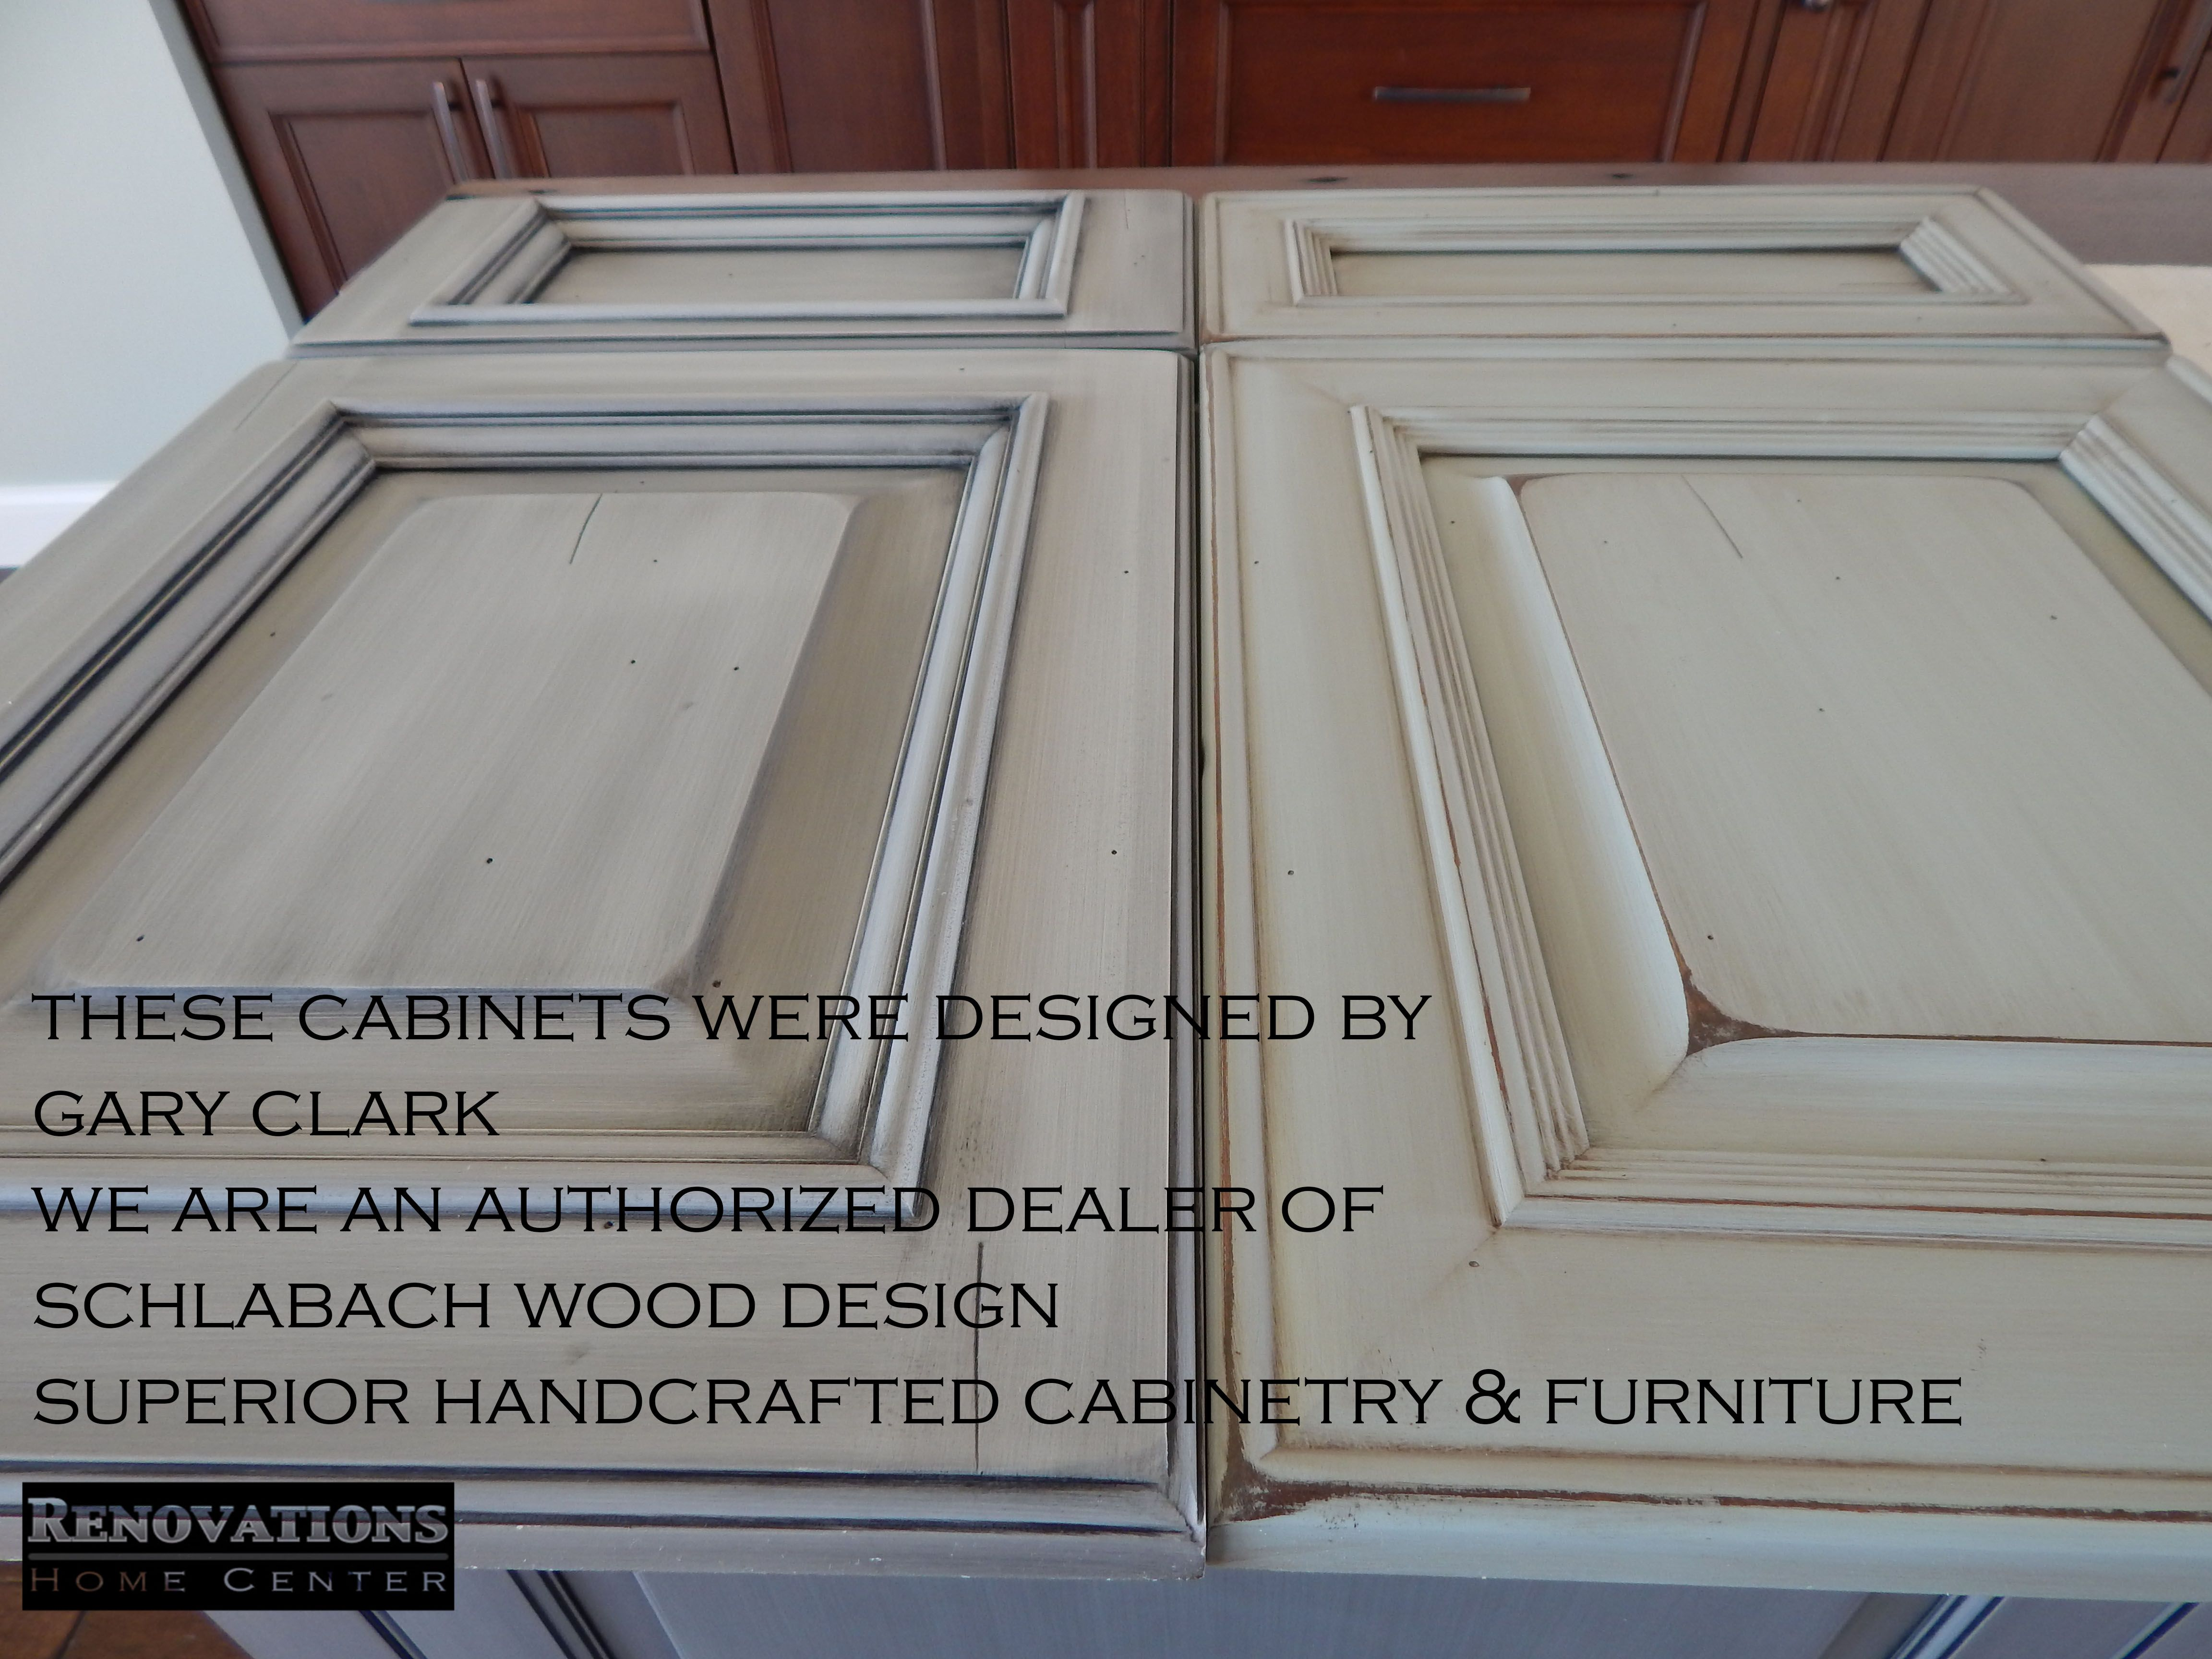 Genial We Are Proud To Feature Our Most Exquisite Cabinet Line From Schlabach Wood  Design. They Offer A Unique Range Of Premium Custom Furniture And Cabinetry  ...